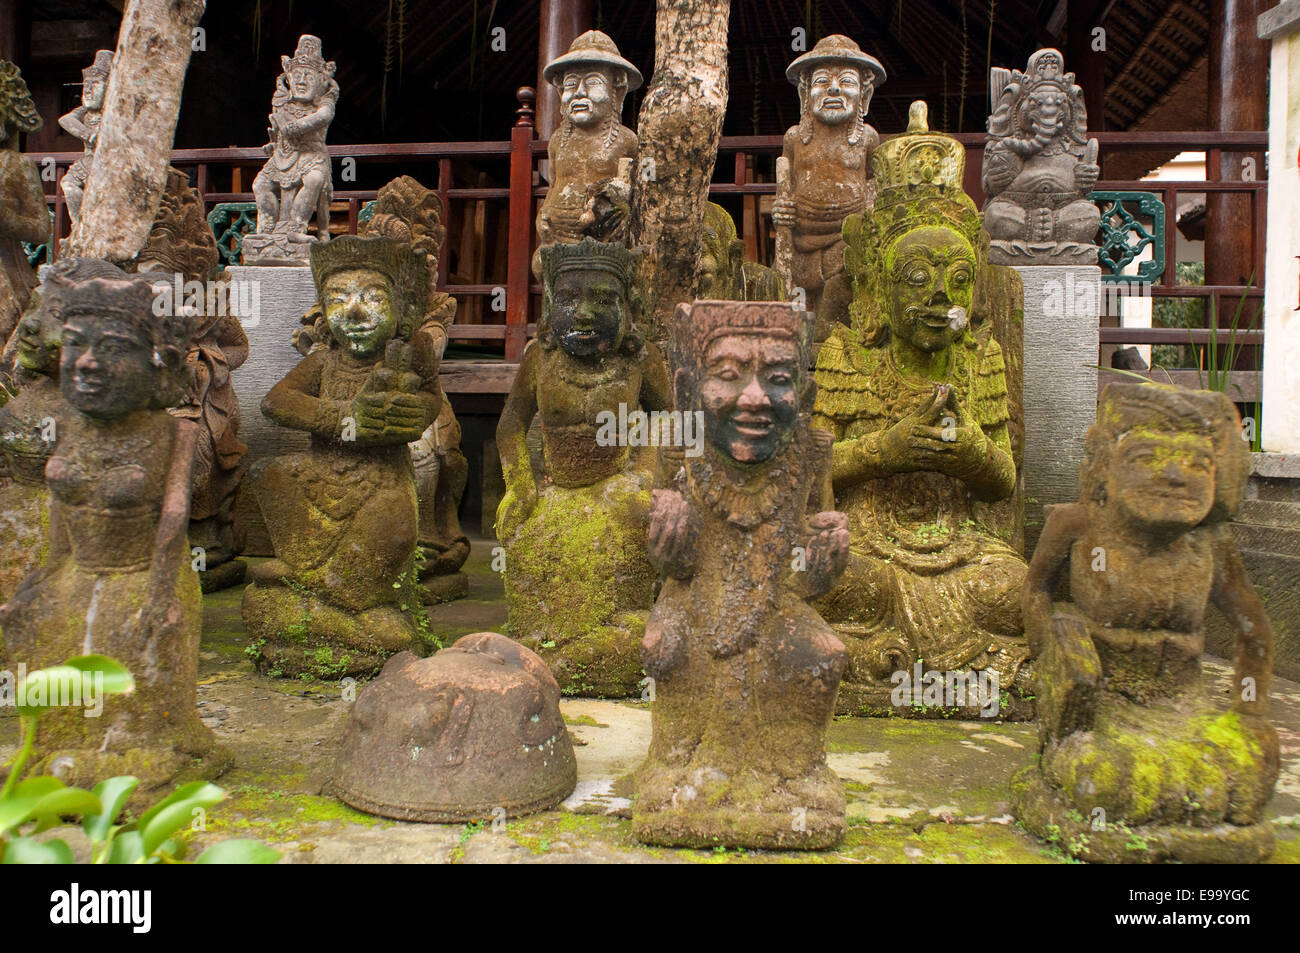 Balinese stone carving t sculpture